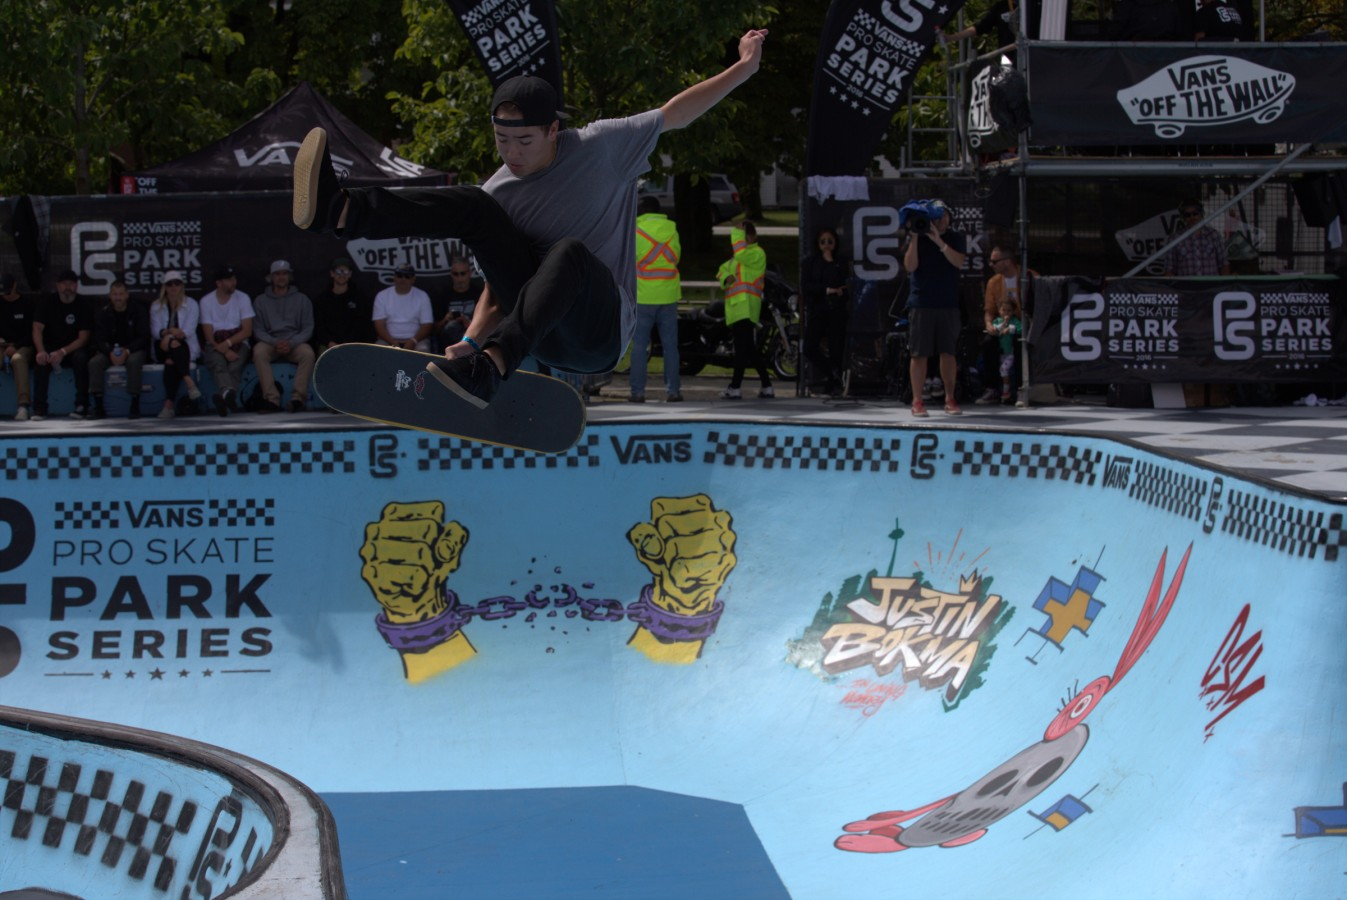 Trey Wood during the 2016 Vans Skate Park Series in Vancouver, Canada